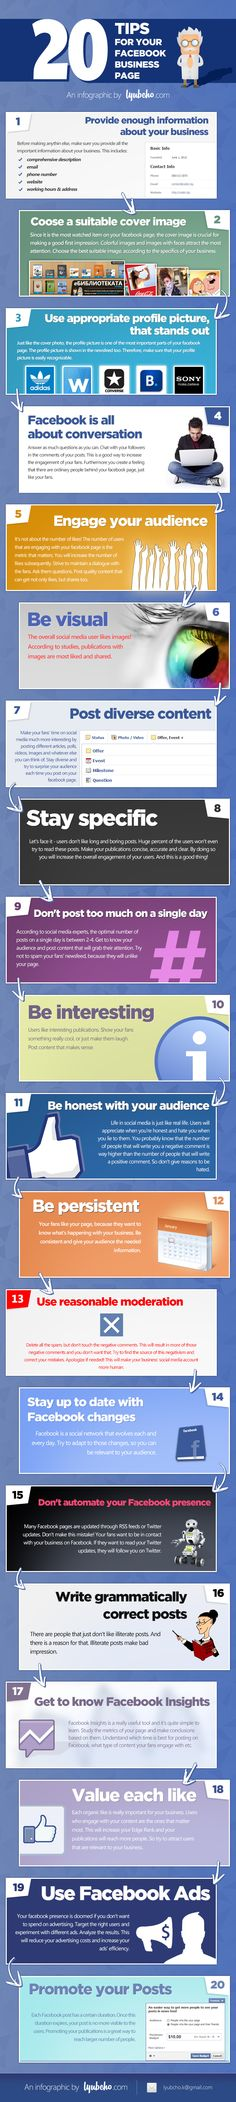 #Infographic: 20 Tips for your Facebook Business Page http://sco.lt/8XLktF Check out this infographic for an overview of the basic principles for running a successful business presence on #facebook and 20 #tips that offer guidance, best practices and reminders for optimizing page posts, activity and images.